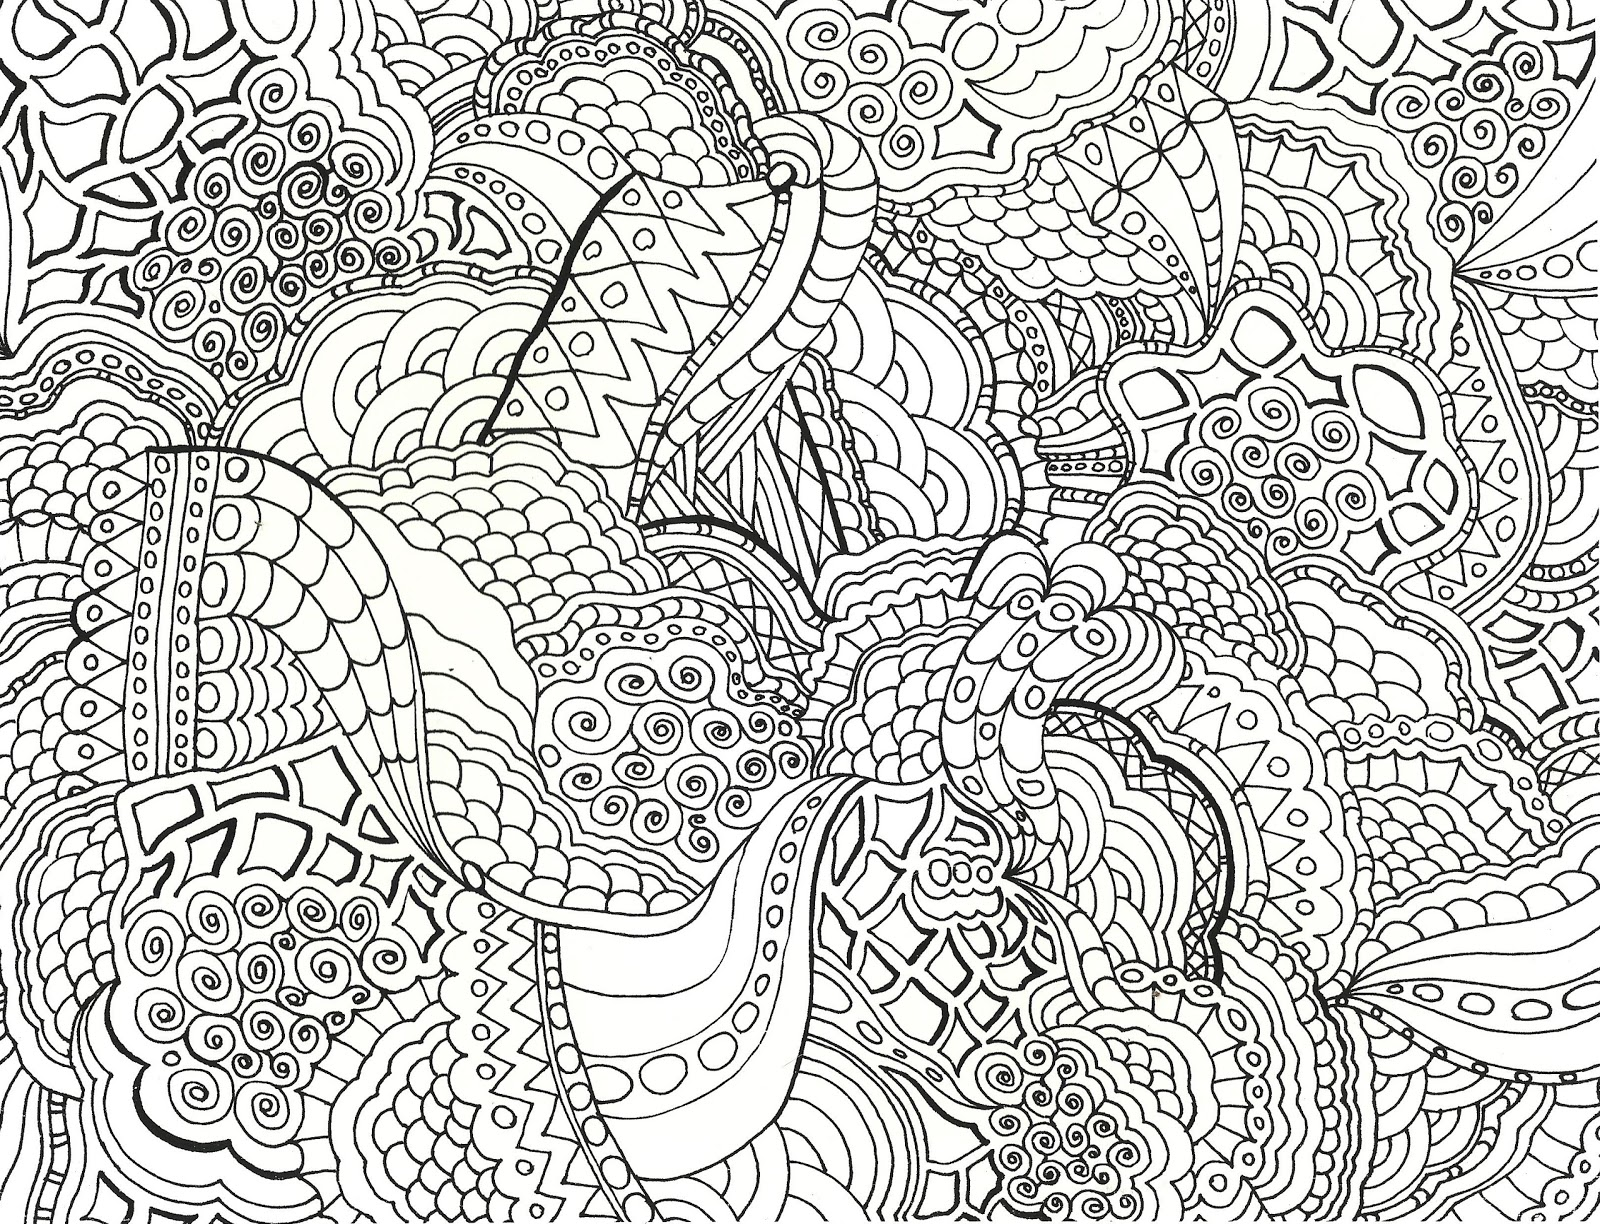 Coloring Pages For Grown Ups : Byrds words coloring books for grown ups